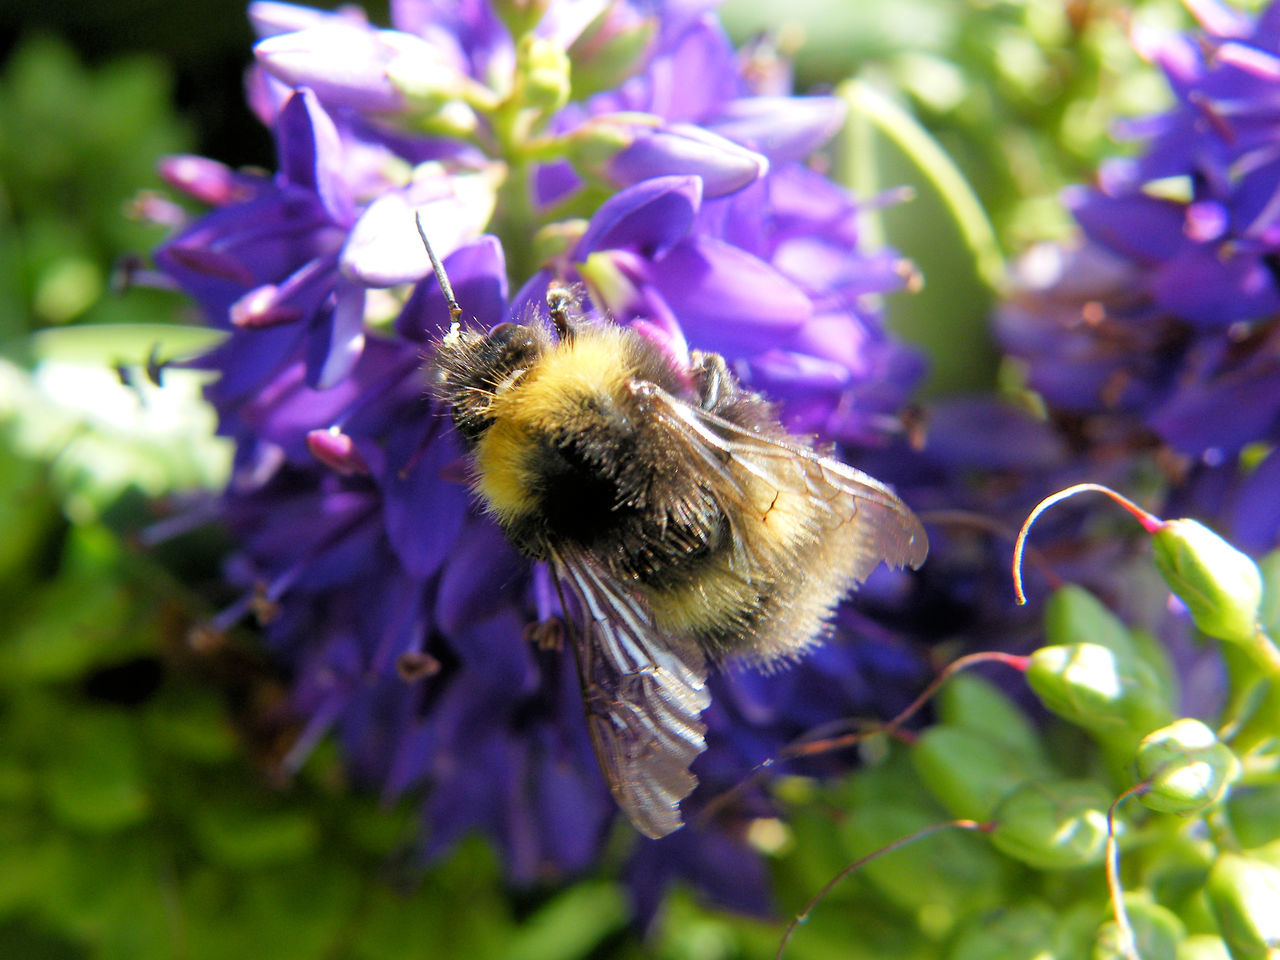 Animal Themes Beauty In Nature Bee Bumble Bee Bumblebee On Flower Close-up Day Flower Flower Head Fragility Freshness Growth Hebe Insect Nature No People Outdoors Plant Pollination Purple She Bee On A He Be